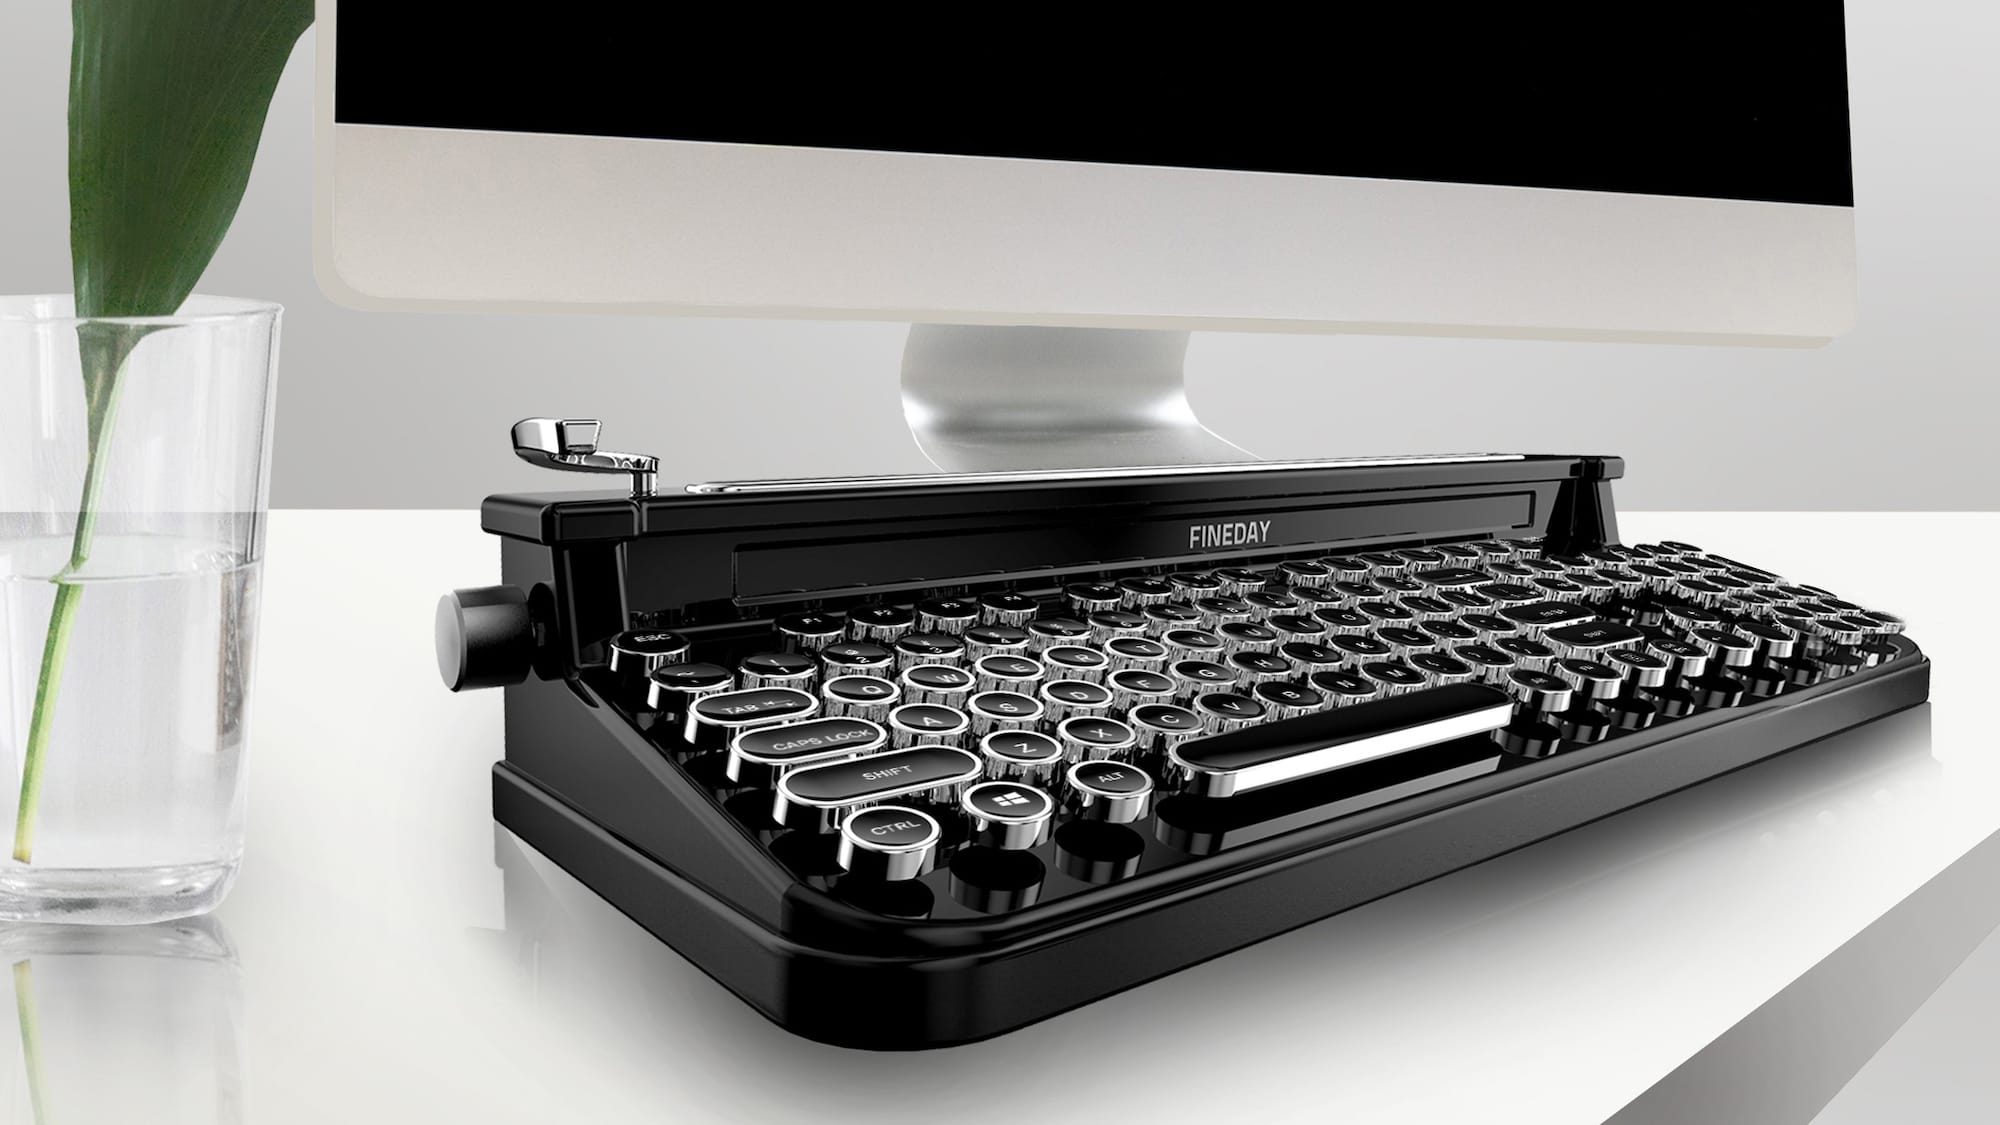 Fineday Retro Bluetooth Typewriter Keyboard pairs with up to three devices